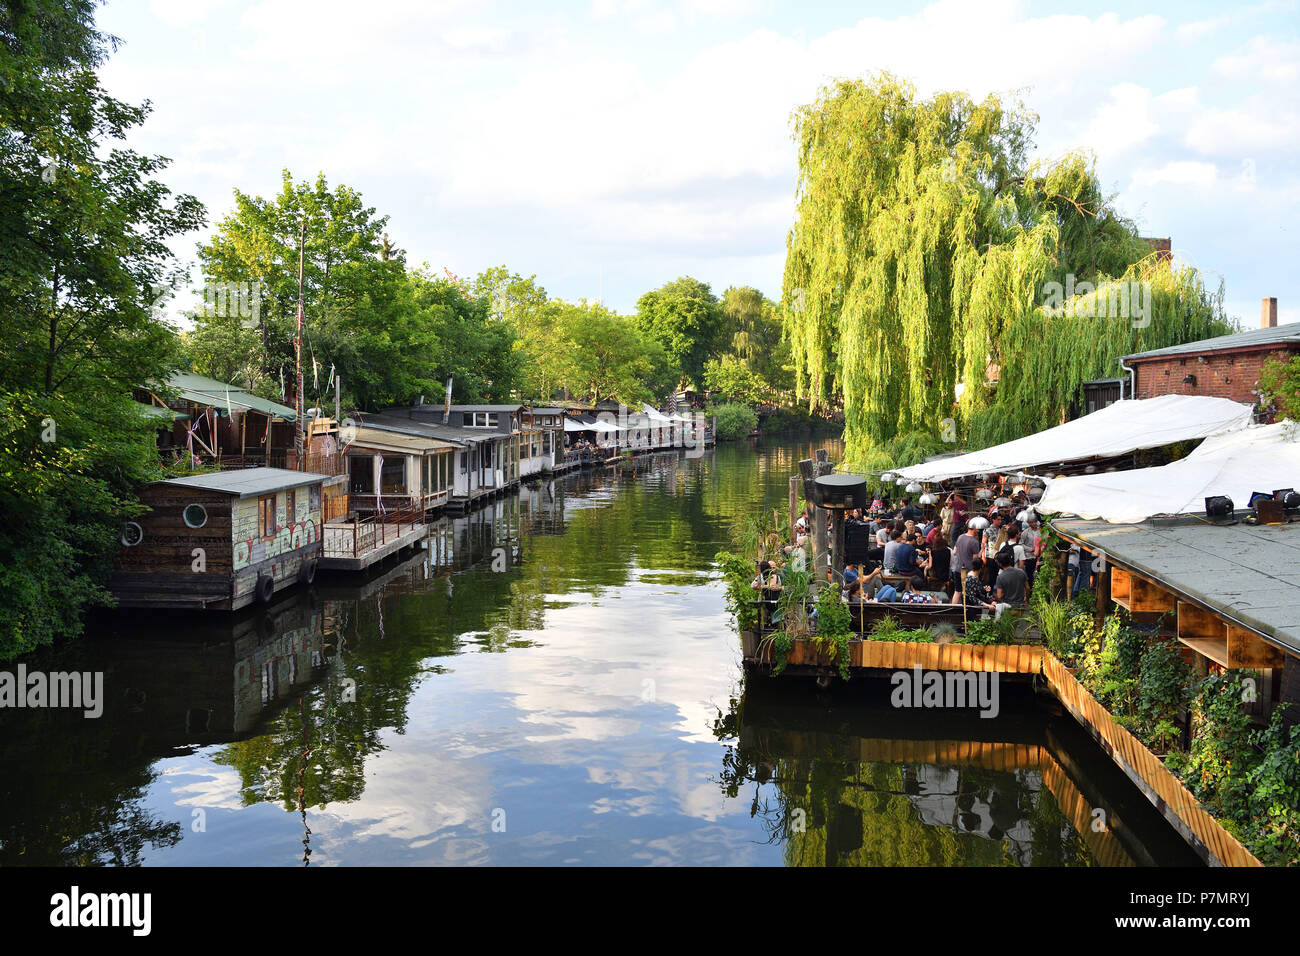 Germany, Berlin, district of Kreuzberg, coffee night club: Club der Visionäre along the Landwehrkanal at Flutgraben - Stock Image